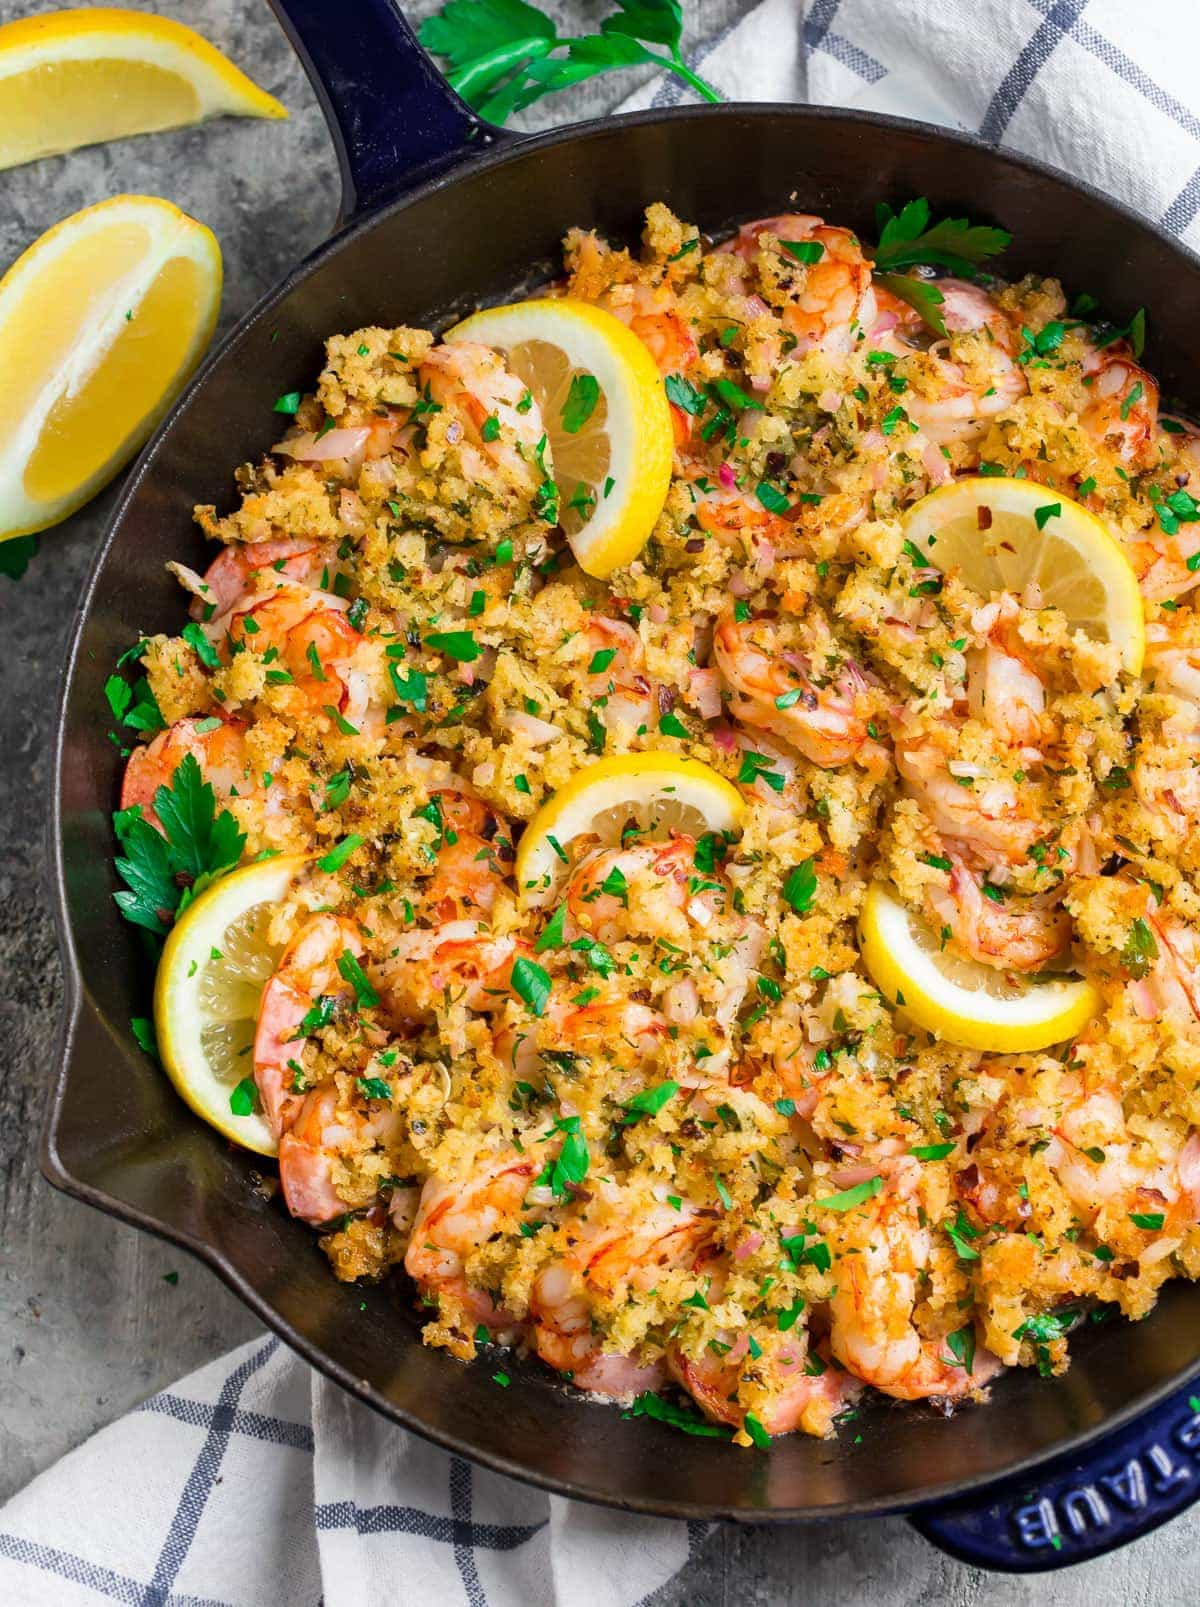 A skillet with baked shrimp scampi topped with garlic butter bread crumbs, lemon slices, and fresh parsley